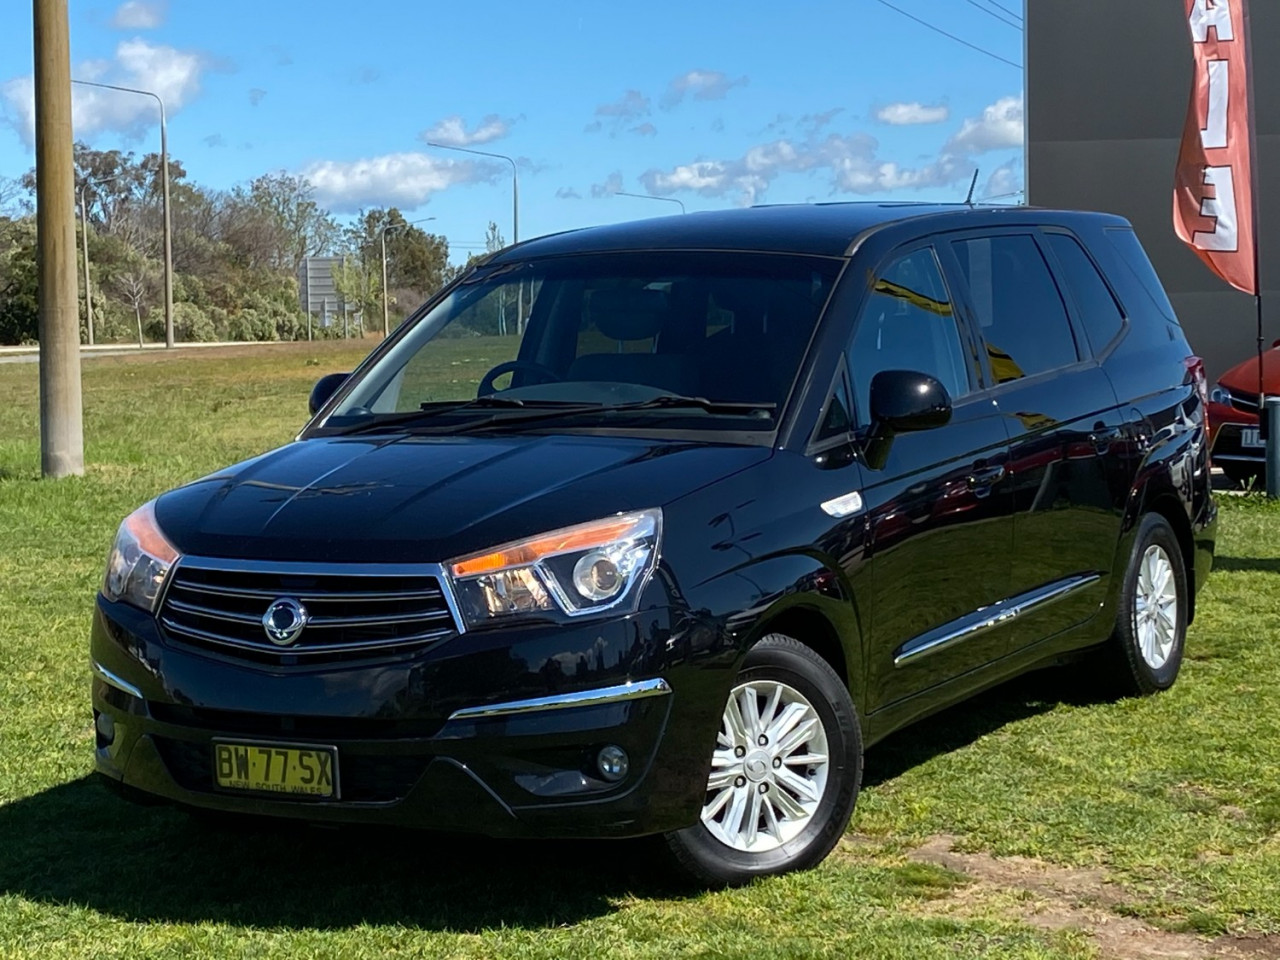 2013 SsangYong Stavic A100 MY13 Wagon Image 21